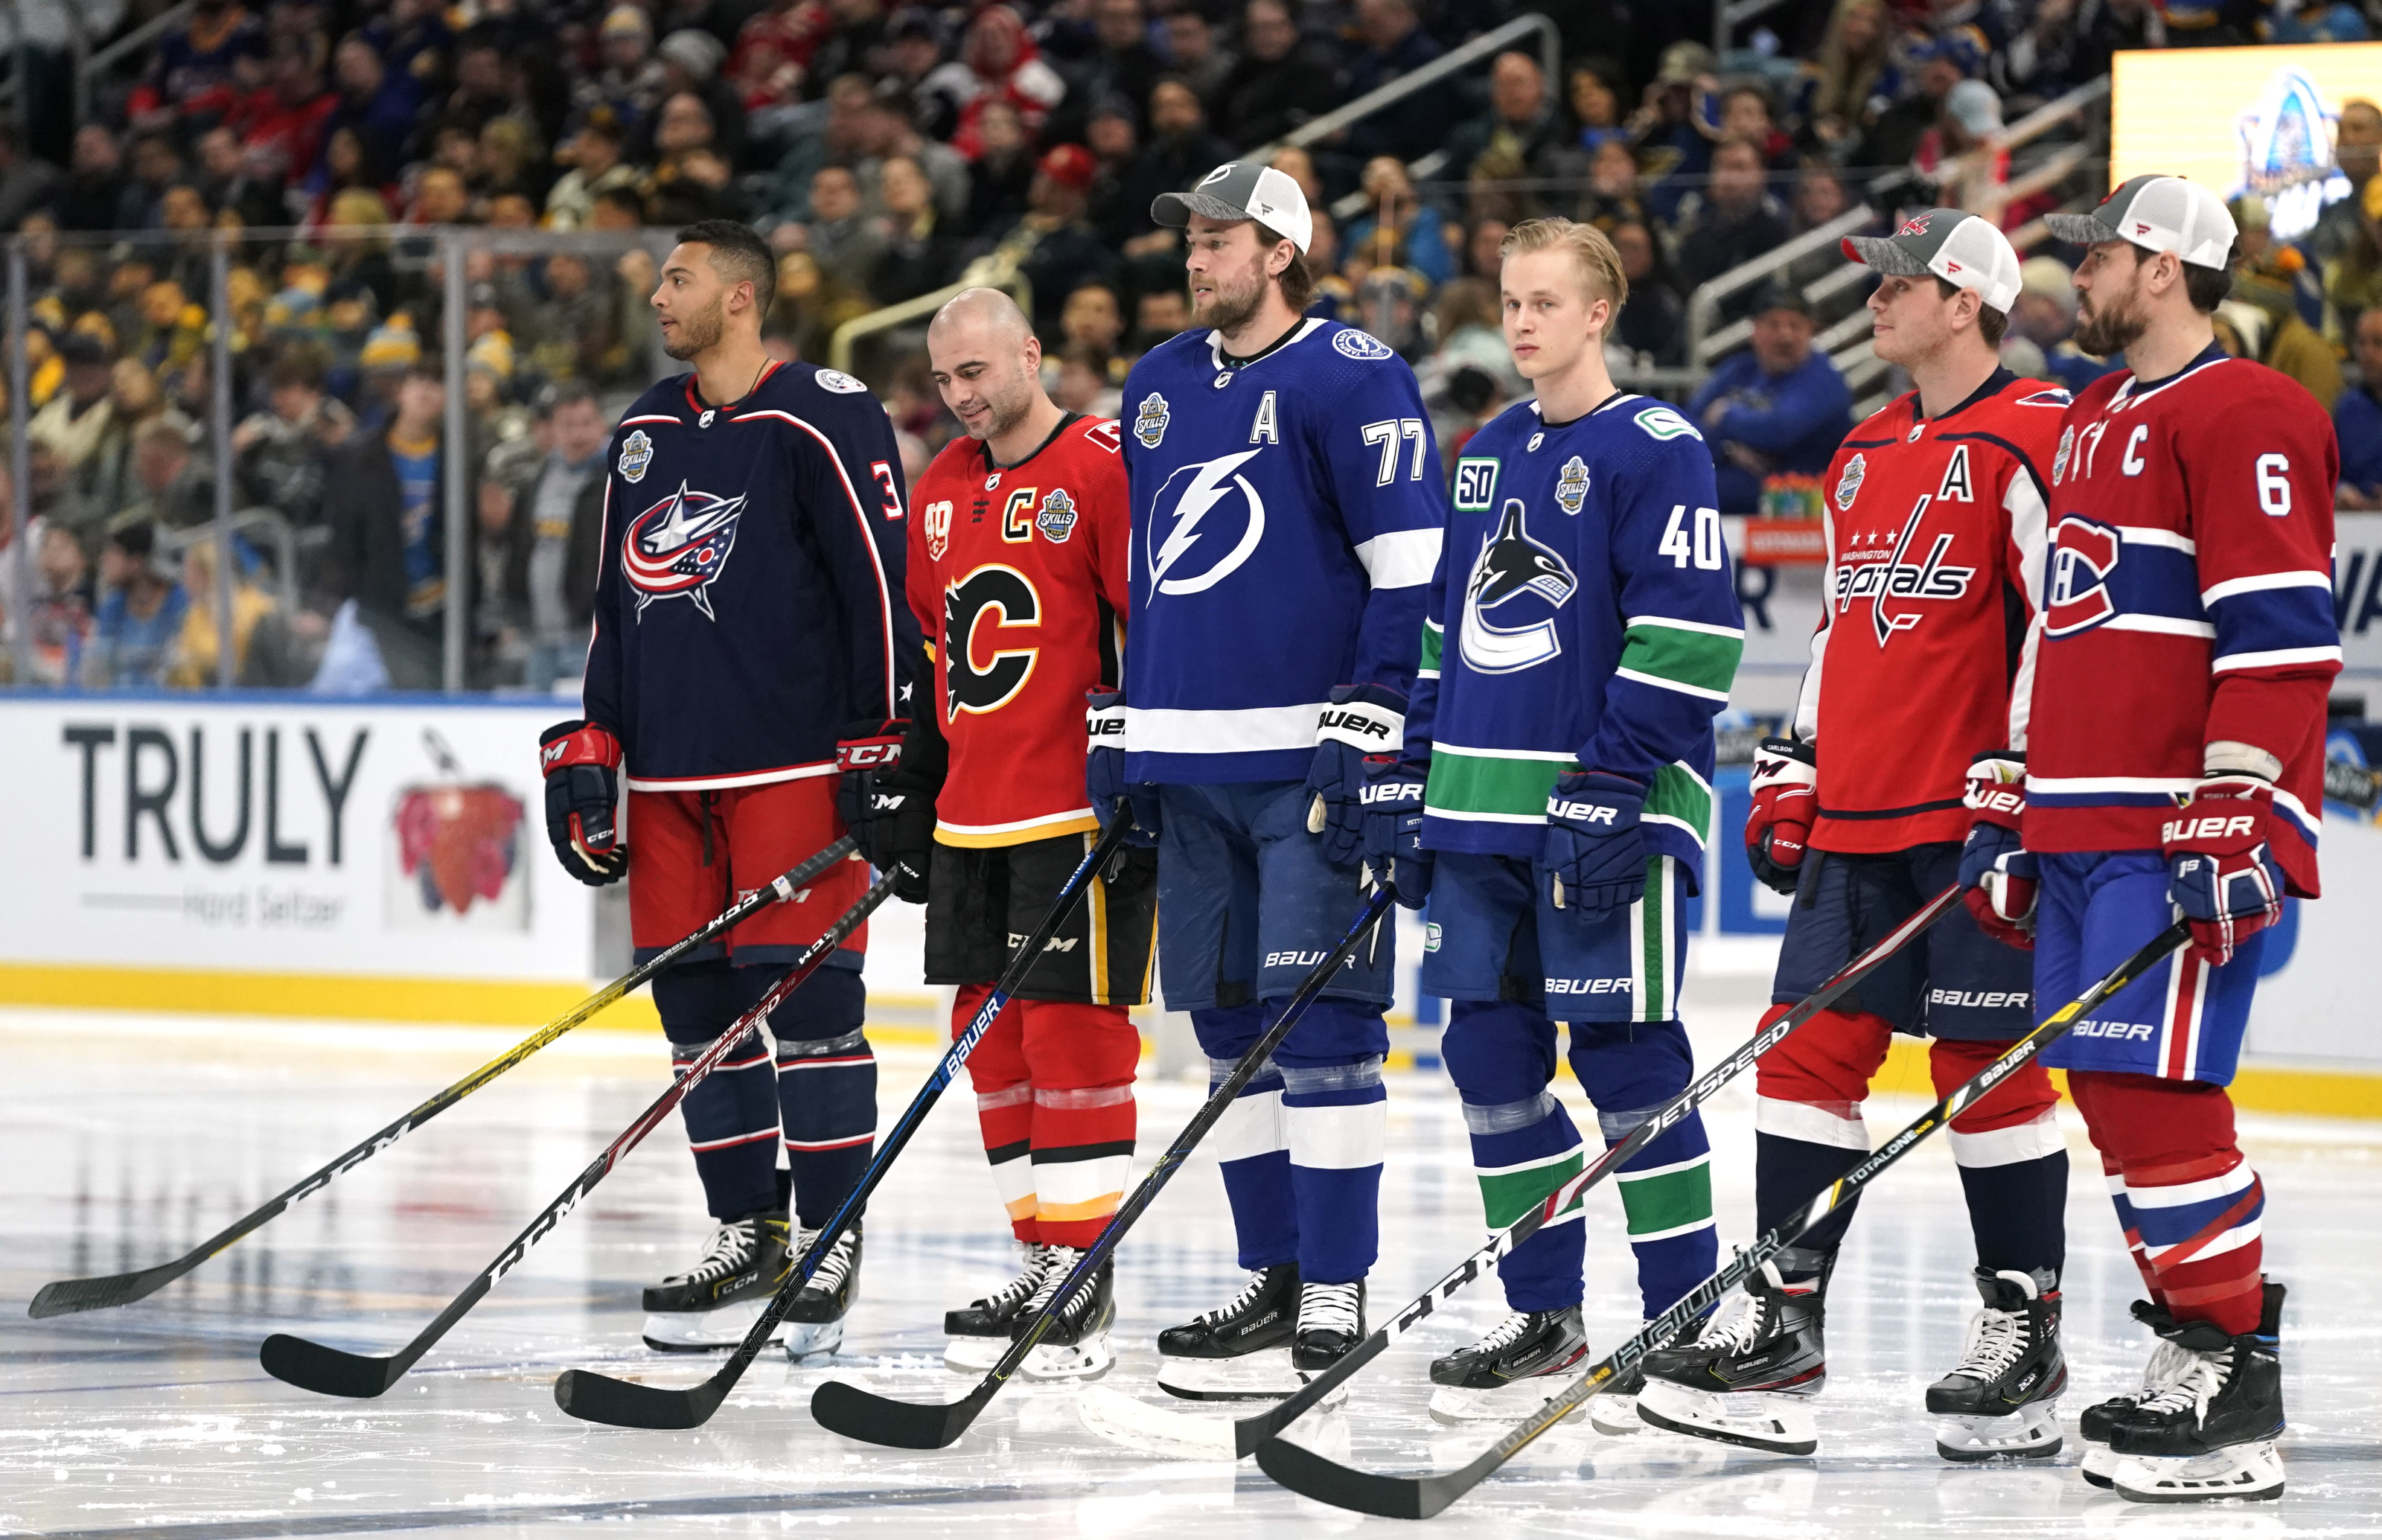 2020 NHL All-Star Game: Rosters, TV